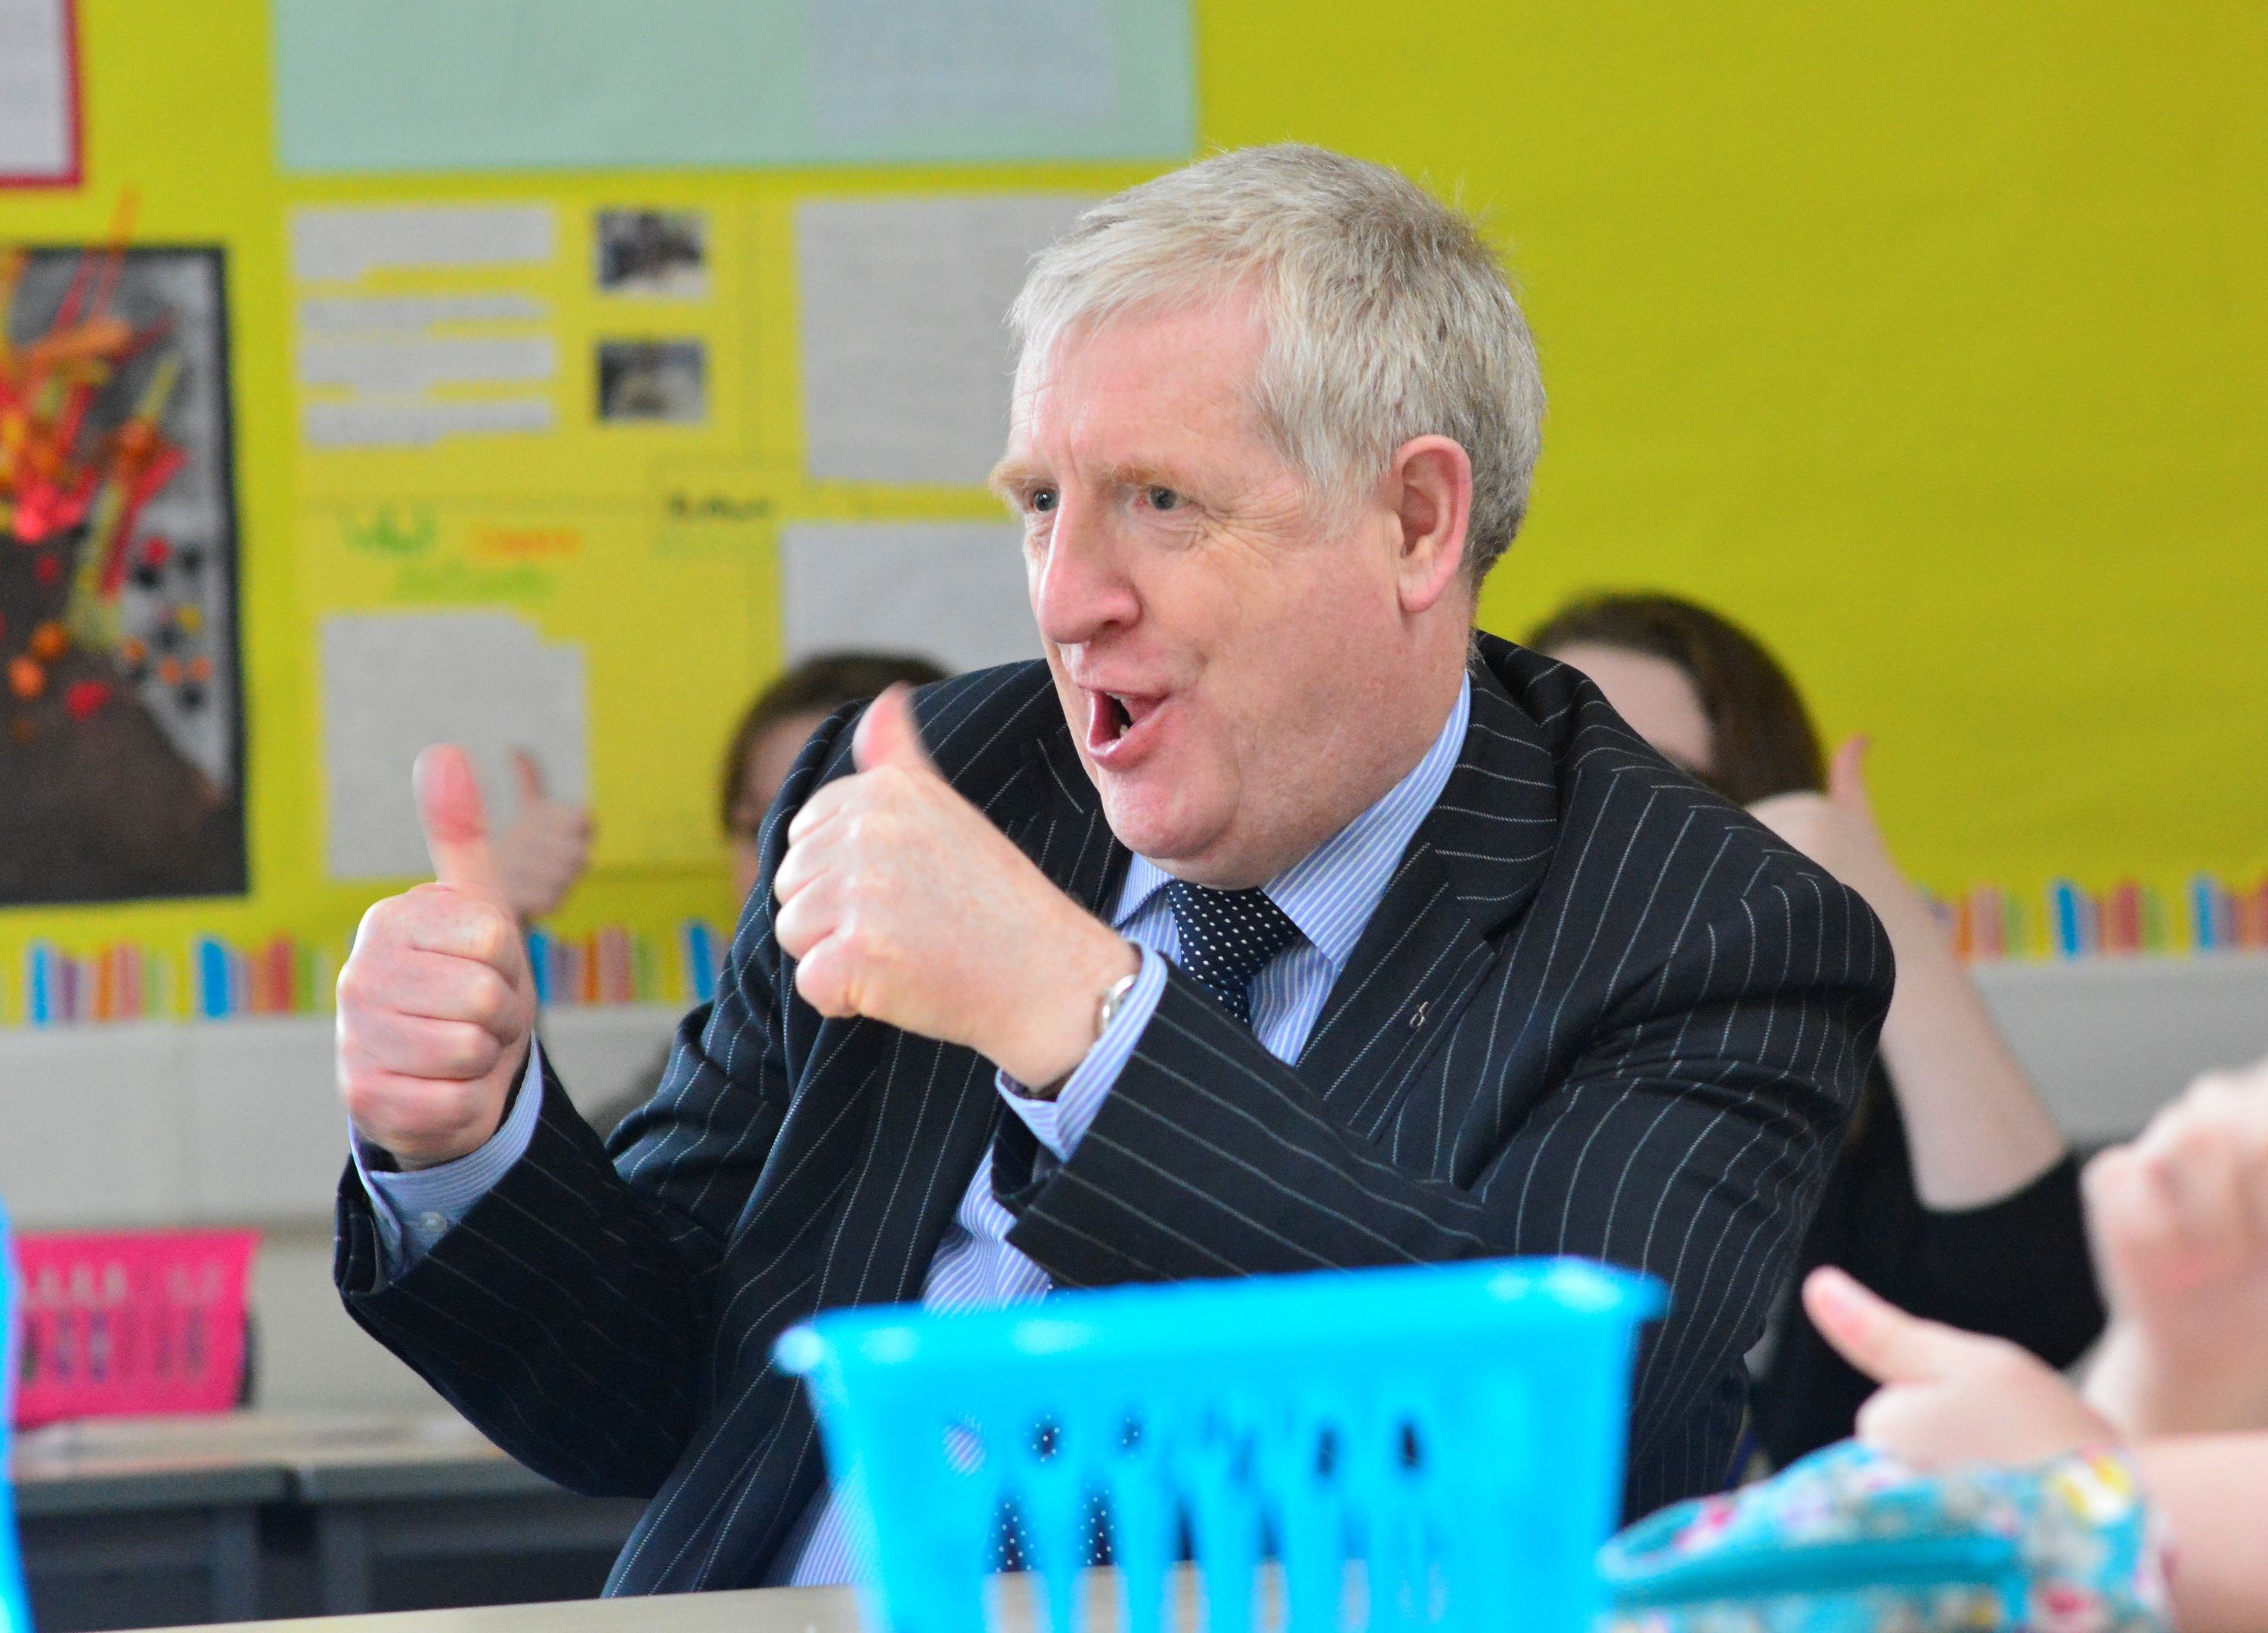 Dunfermline and West Fife MP Douglas Chapman will face questions from Pittencrieff Primary pupils.